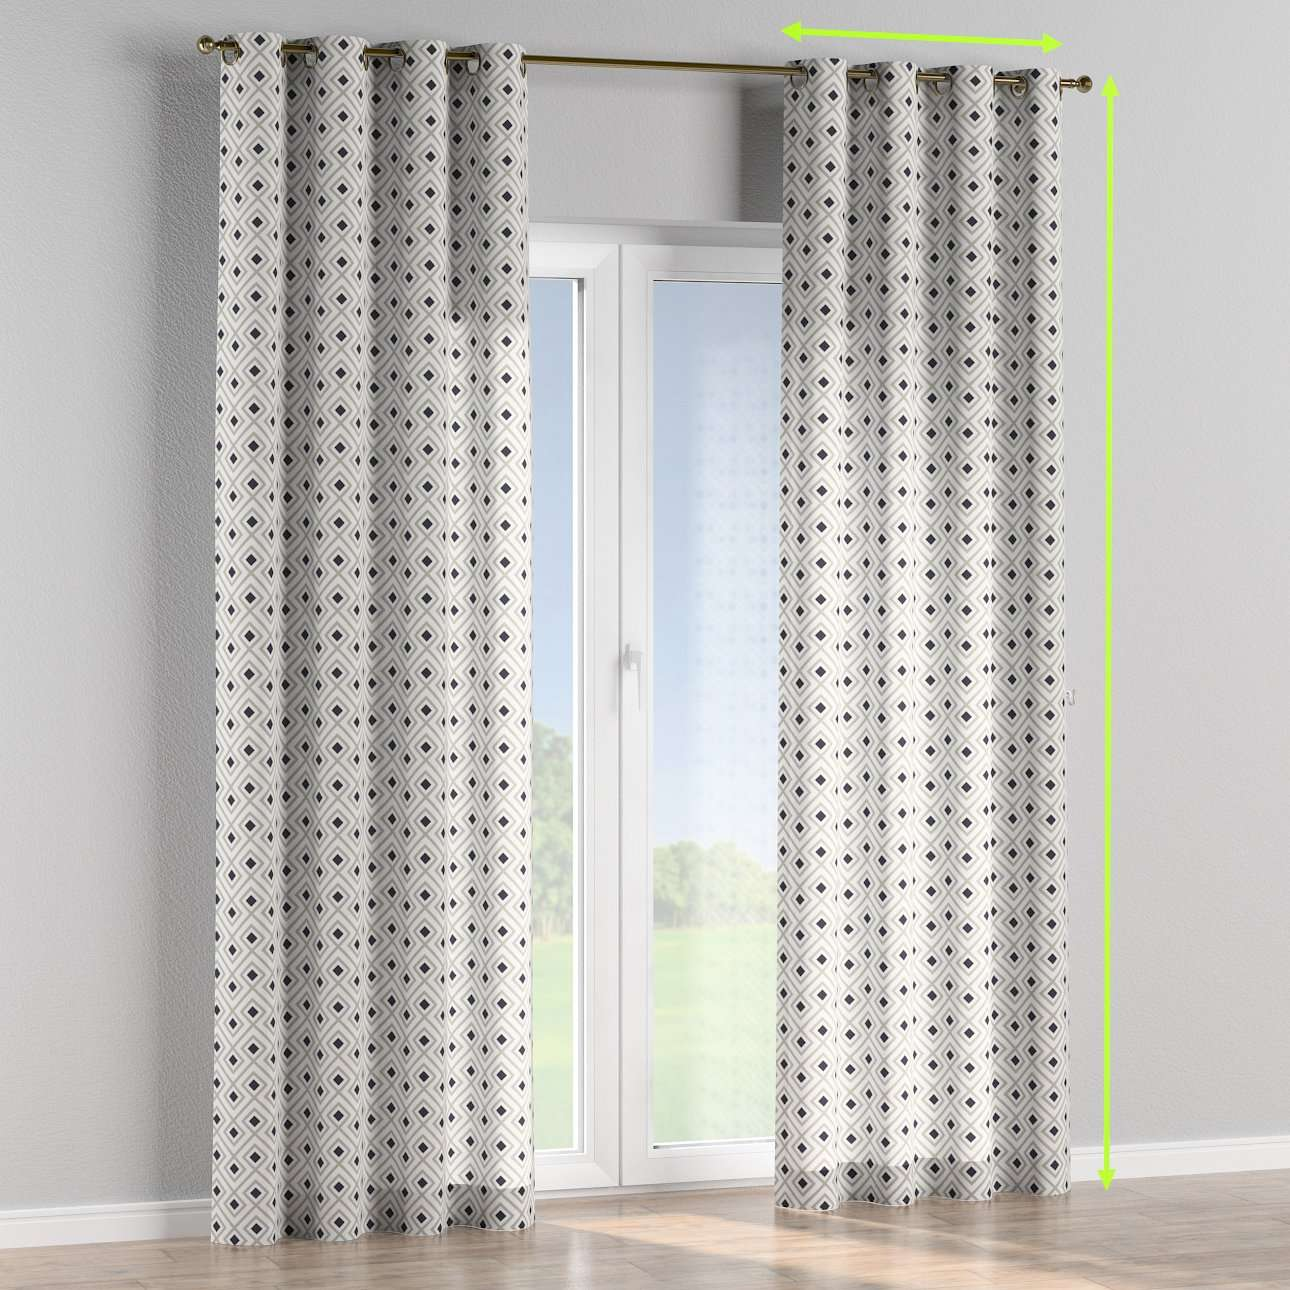 Eyelet lined curtains in collection Geometric, fabric: 141-44